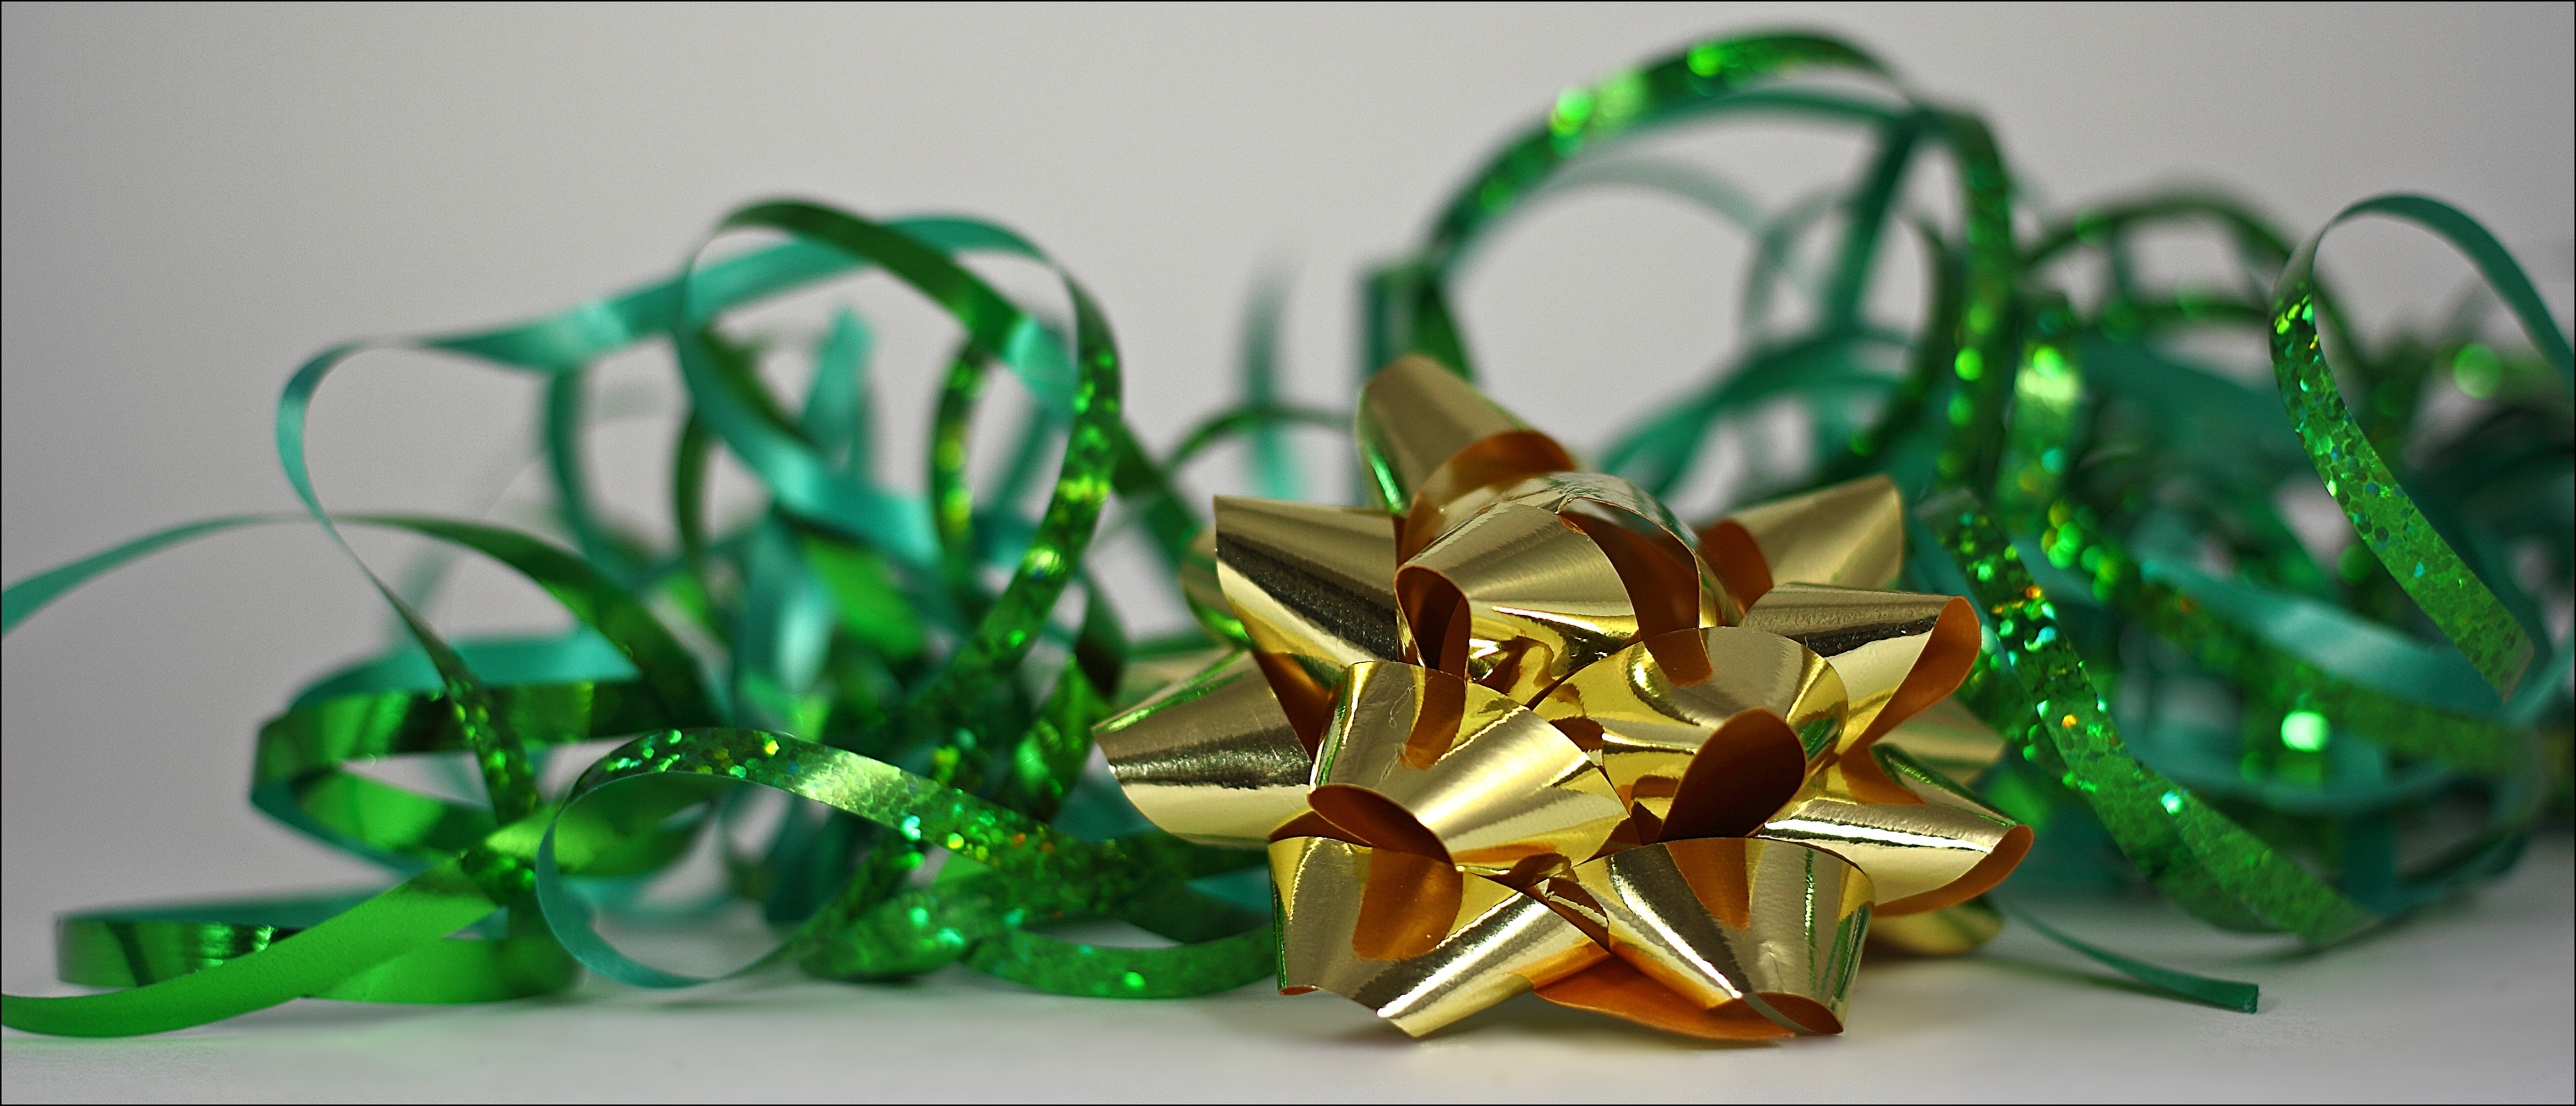 365 Days In Colour: Dark Green & Or Gold. green, canon, dark, gold, ribbons, or, bows, 60d, 365daysincolour. buy photo